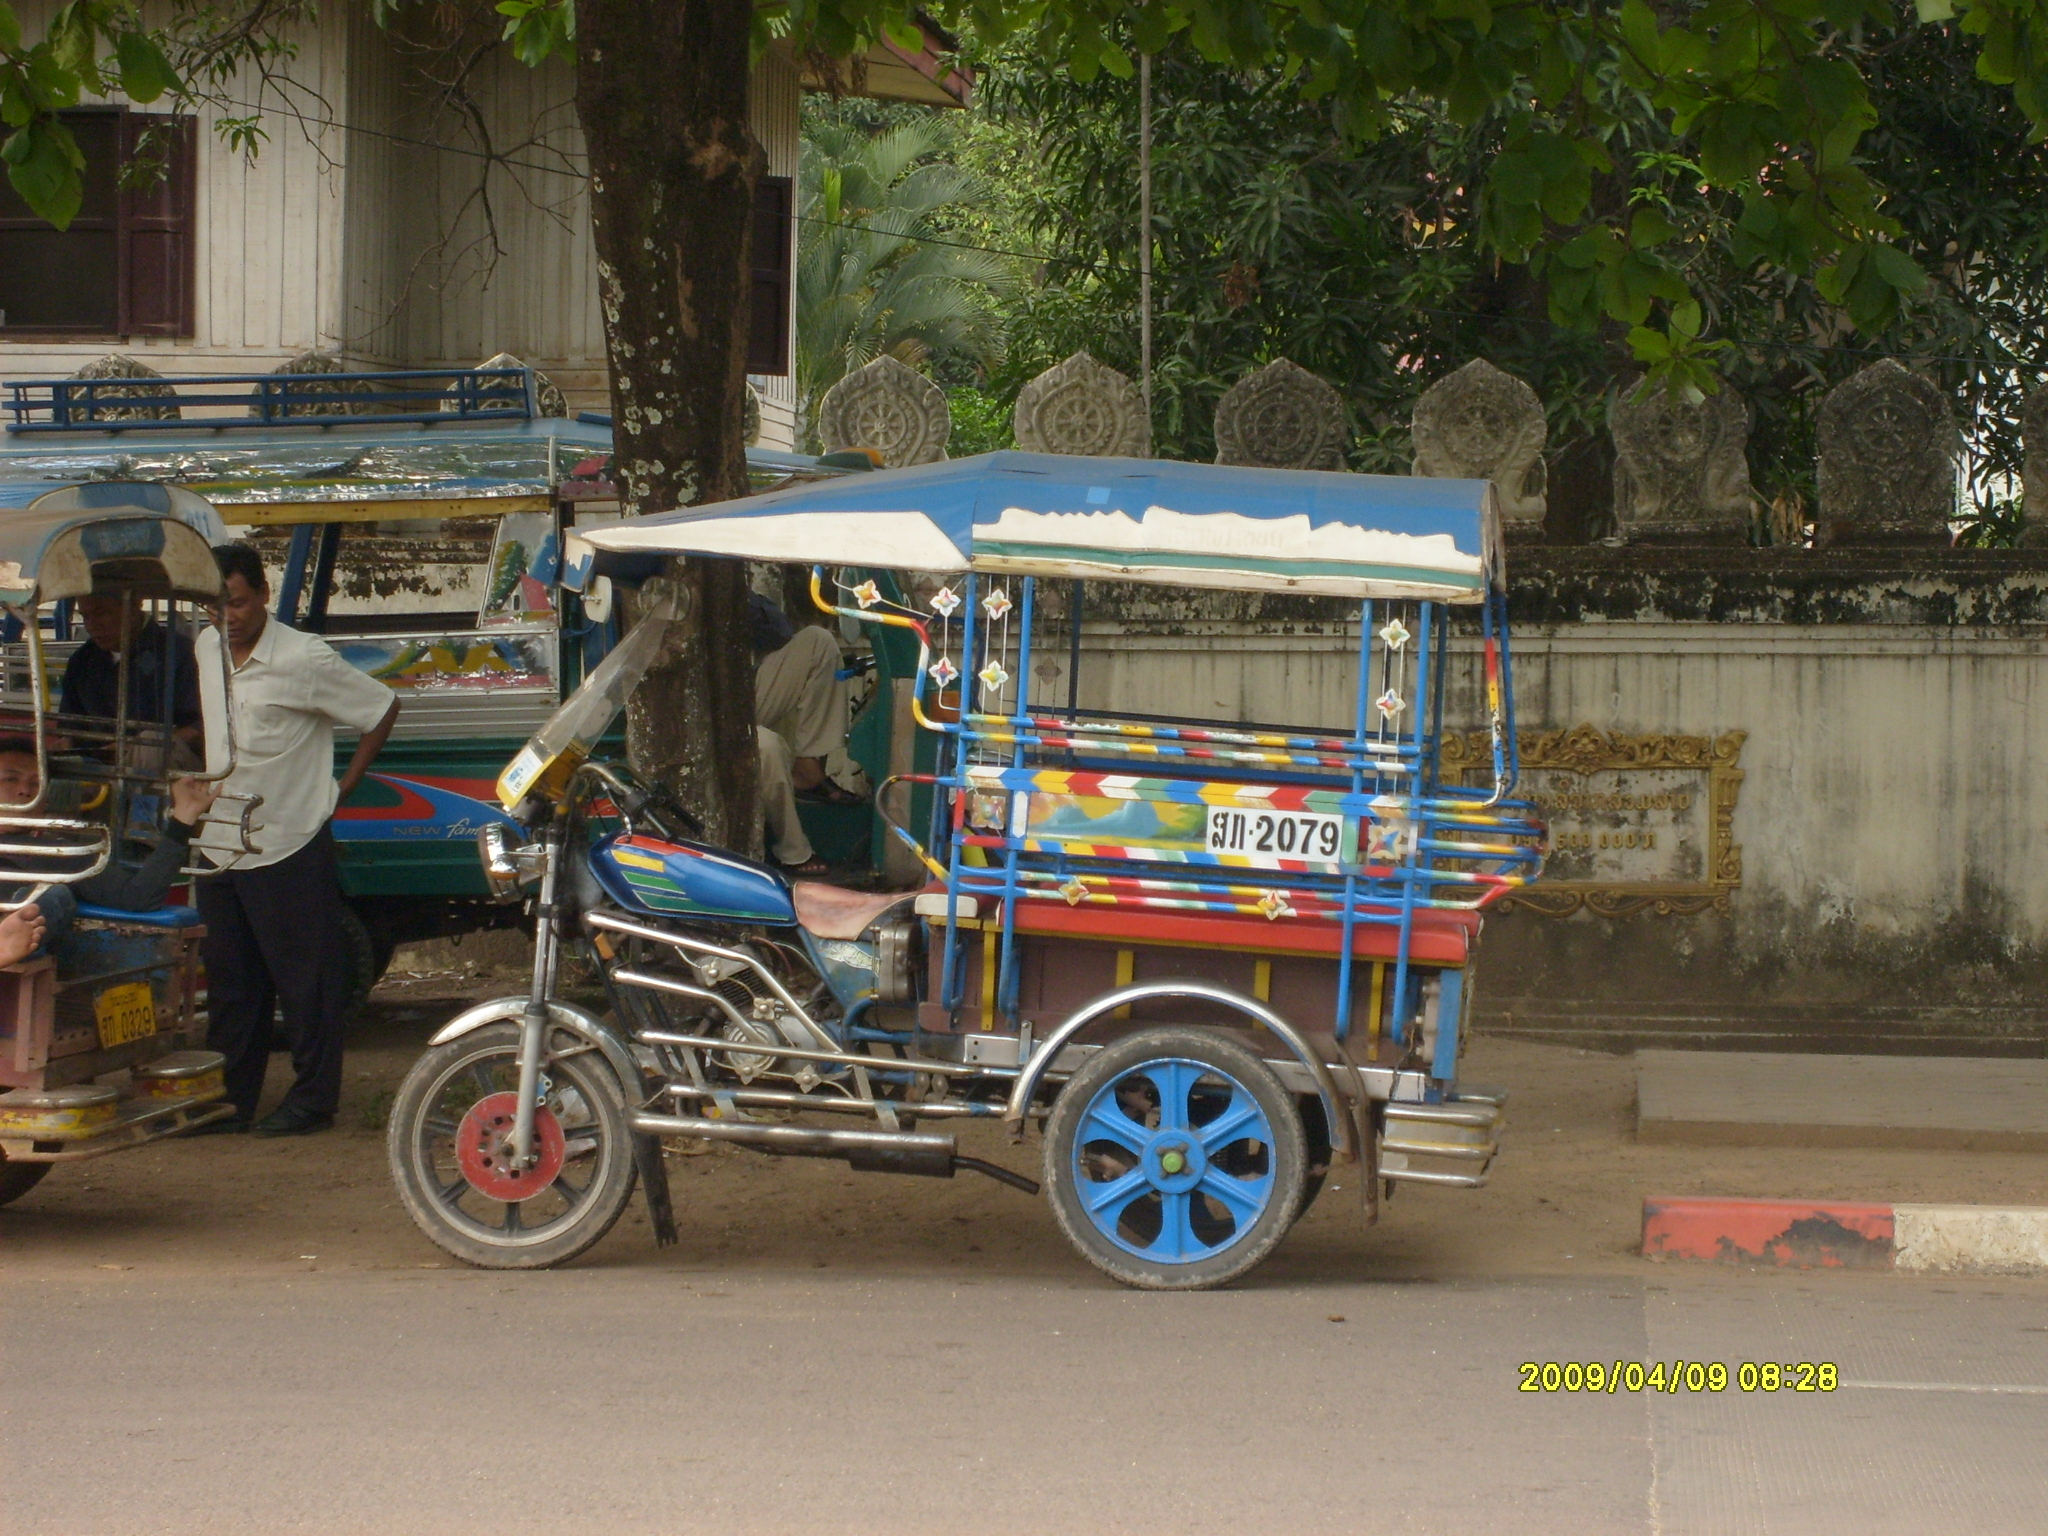 This is a tuk-tuk. These three-wheeled contraptions act as family vehicles, taxis, and schoolbuses.